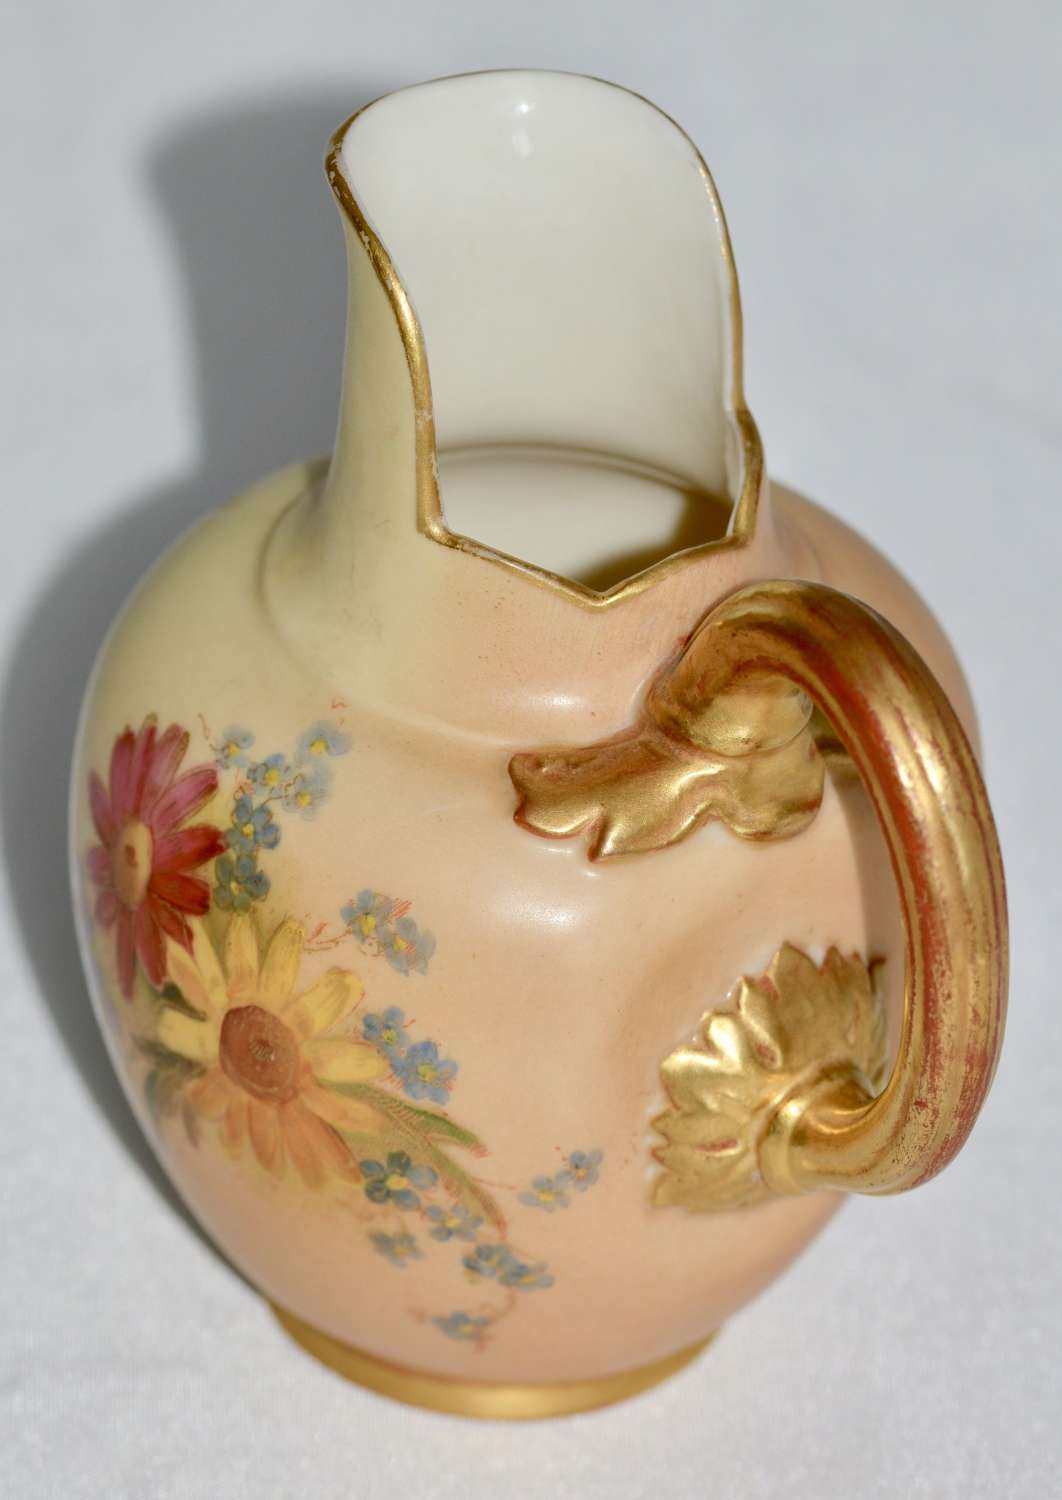 1908 Royal Worcester Blush Ivory Flat Back Jug